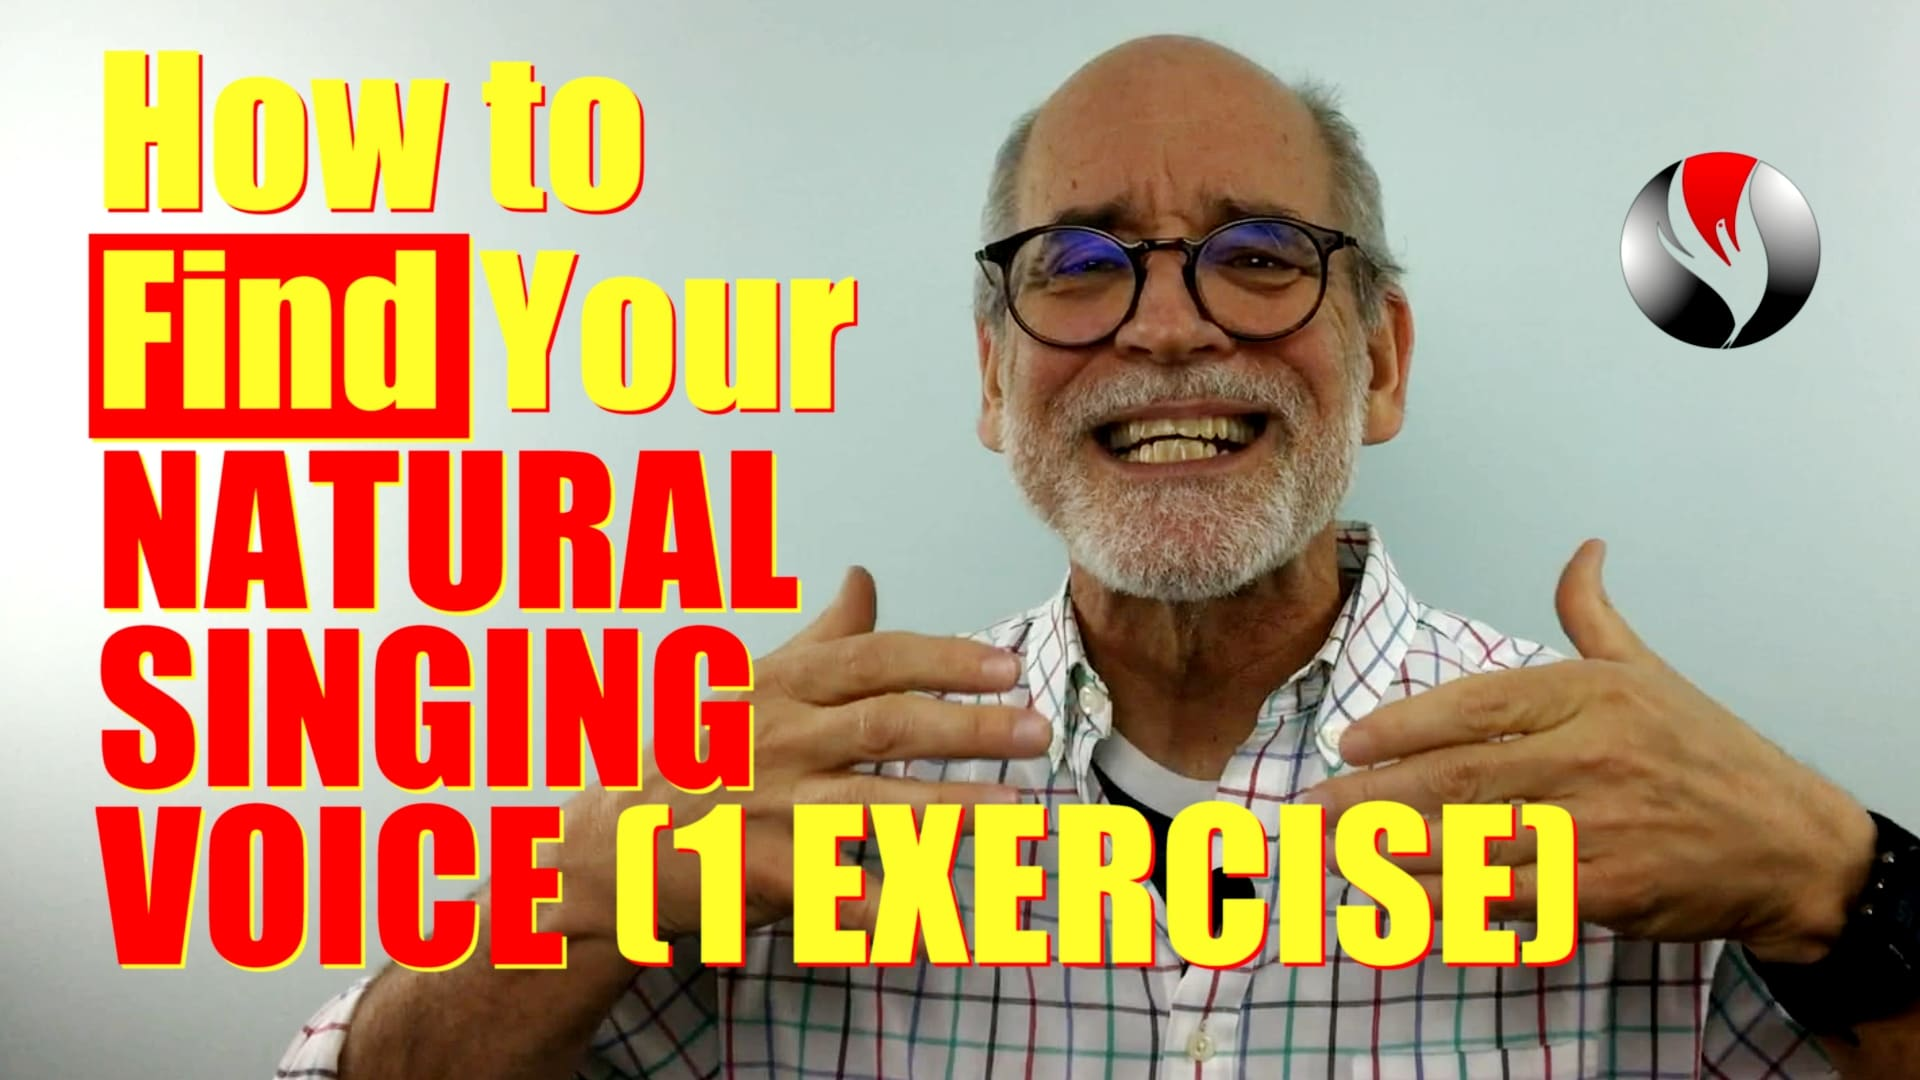 How To Find Your Natural Singing Voice – Do This One Easy Exercise